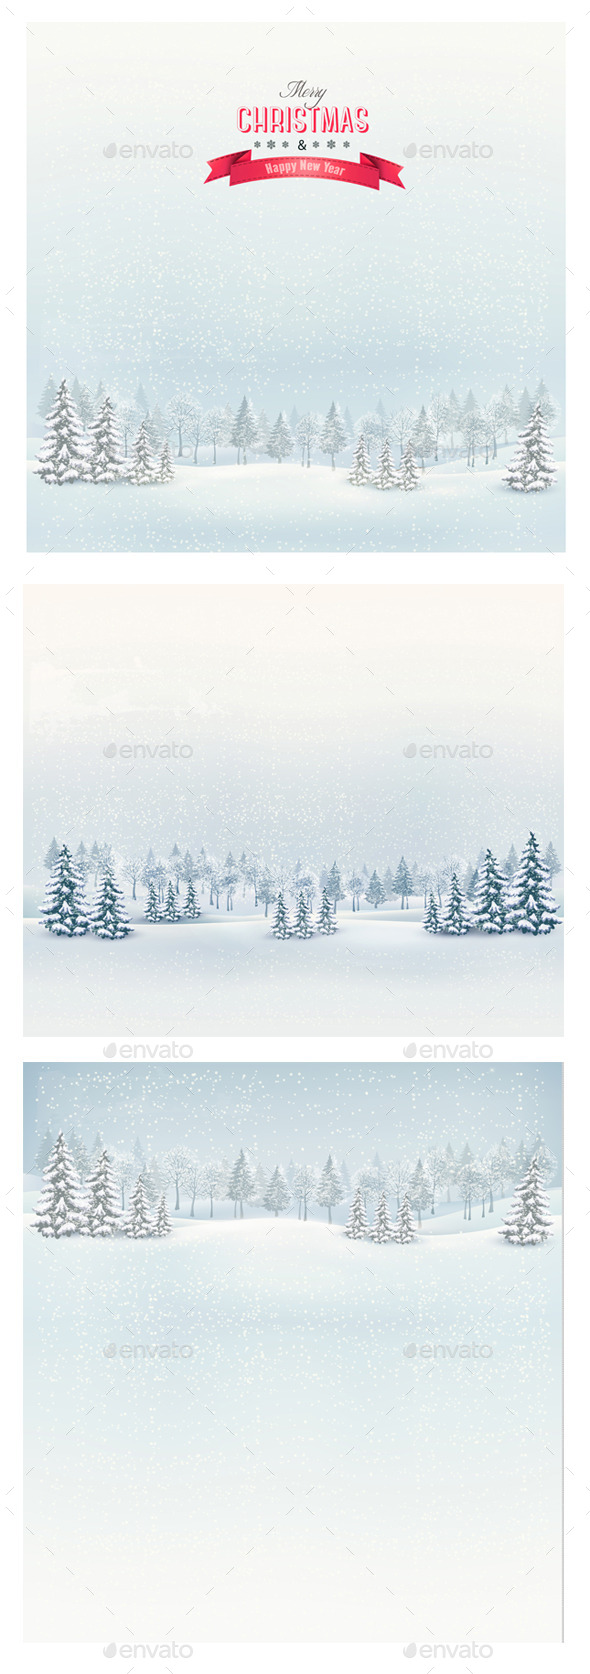 GraphicRiver Christmas Winter Landscape Backgrounds Bundle 9475449